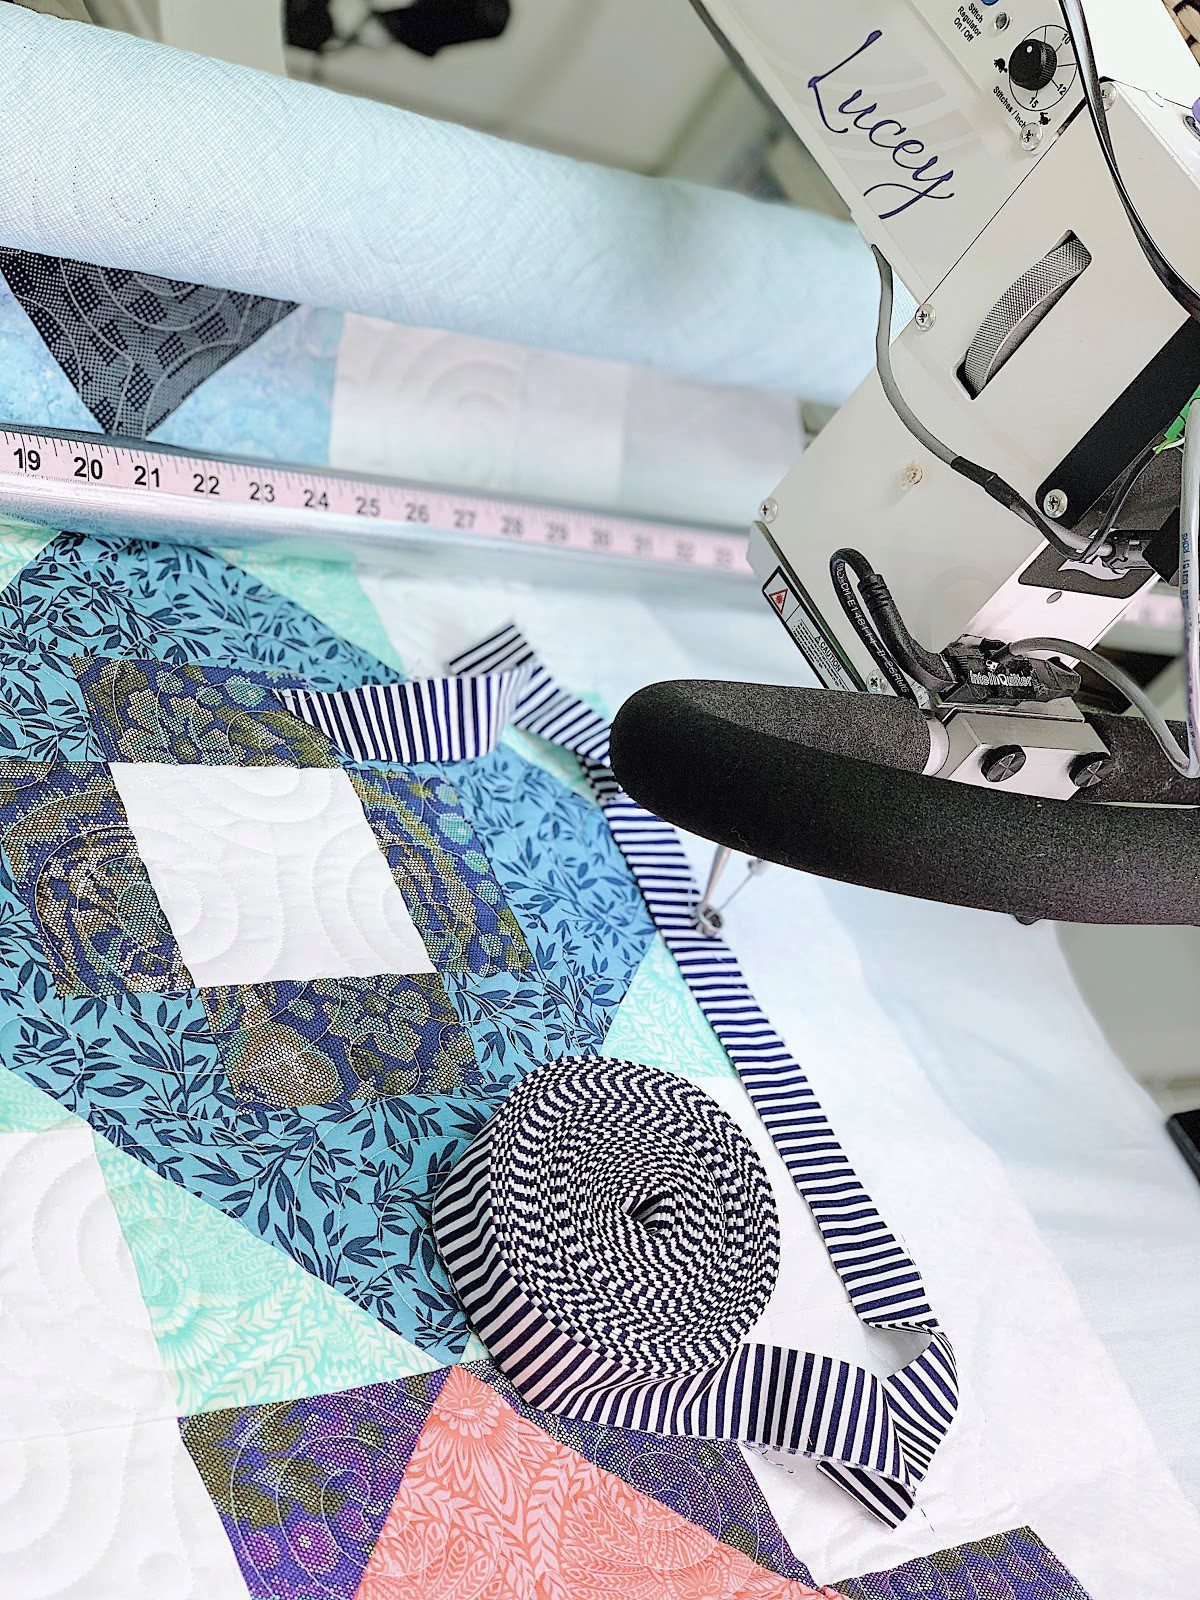 Binding a Longarm Quilted quilt